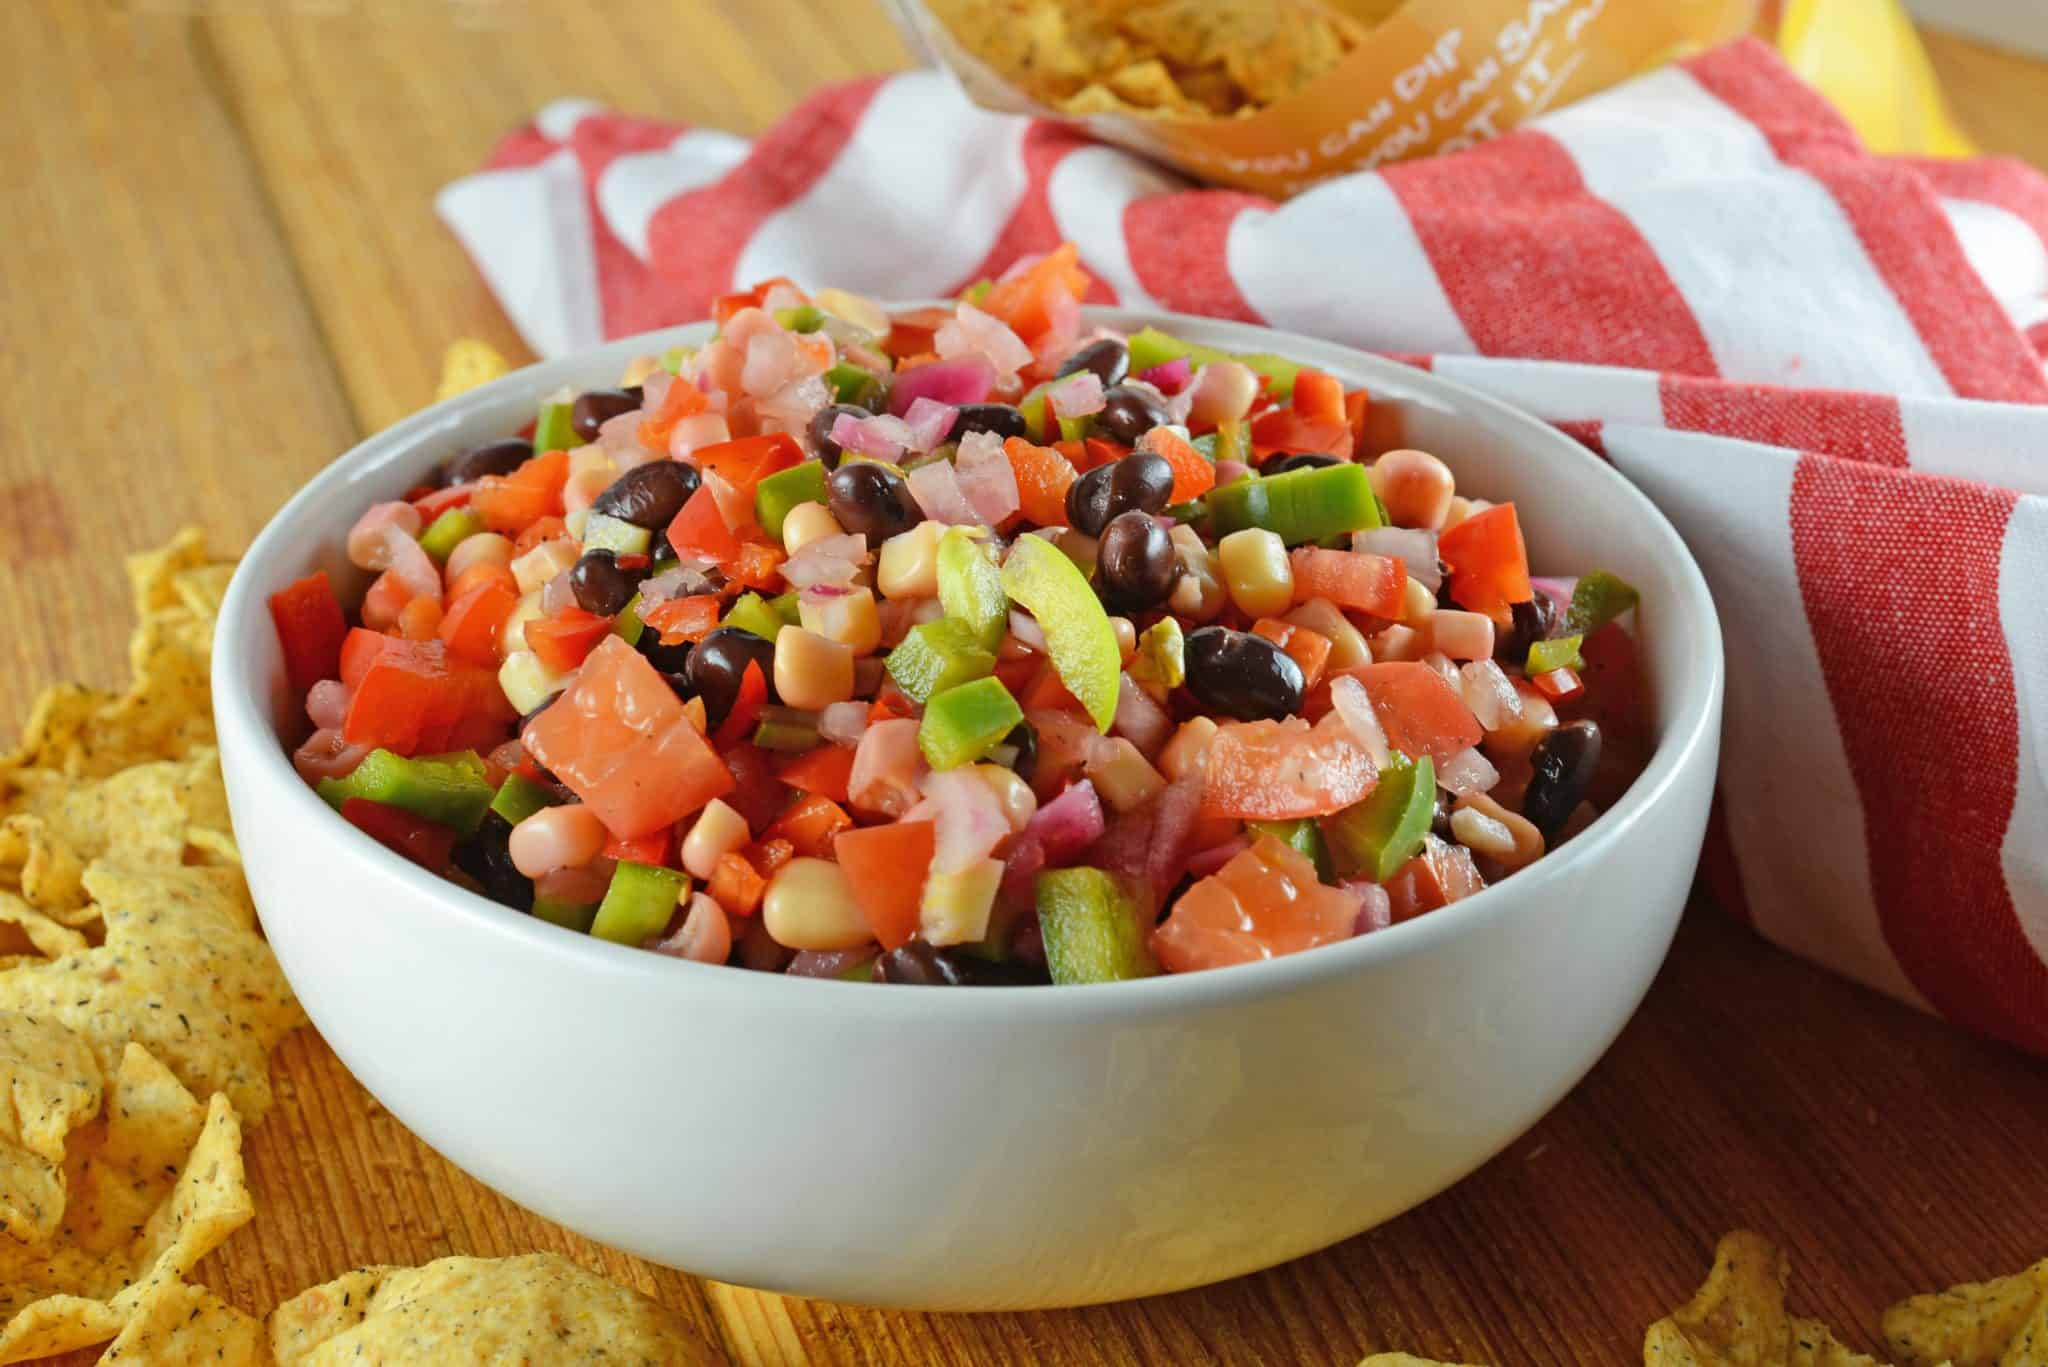 Texas Caviar is my most popular recipe! Made with fresh vegetables, black beans and a simple marinade, it will be the hit of the party!